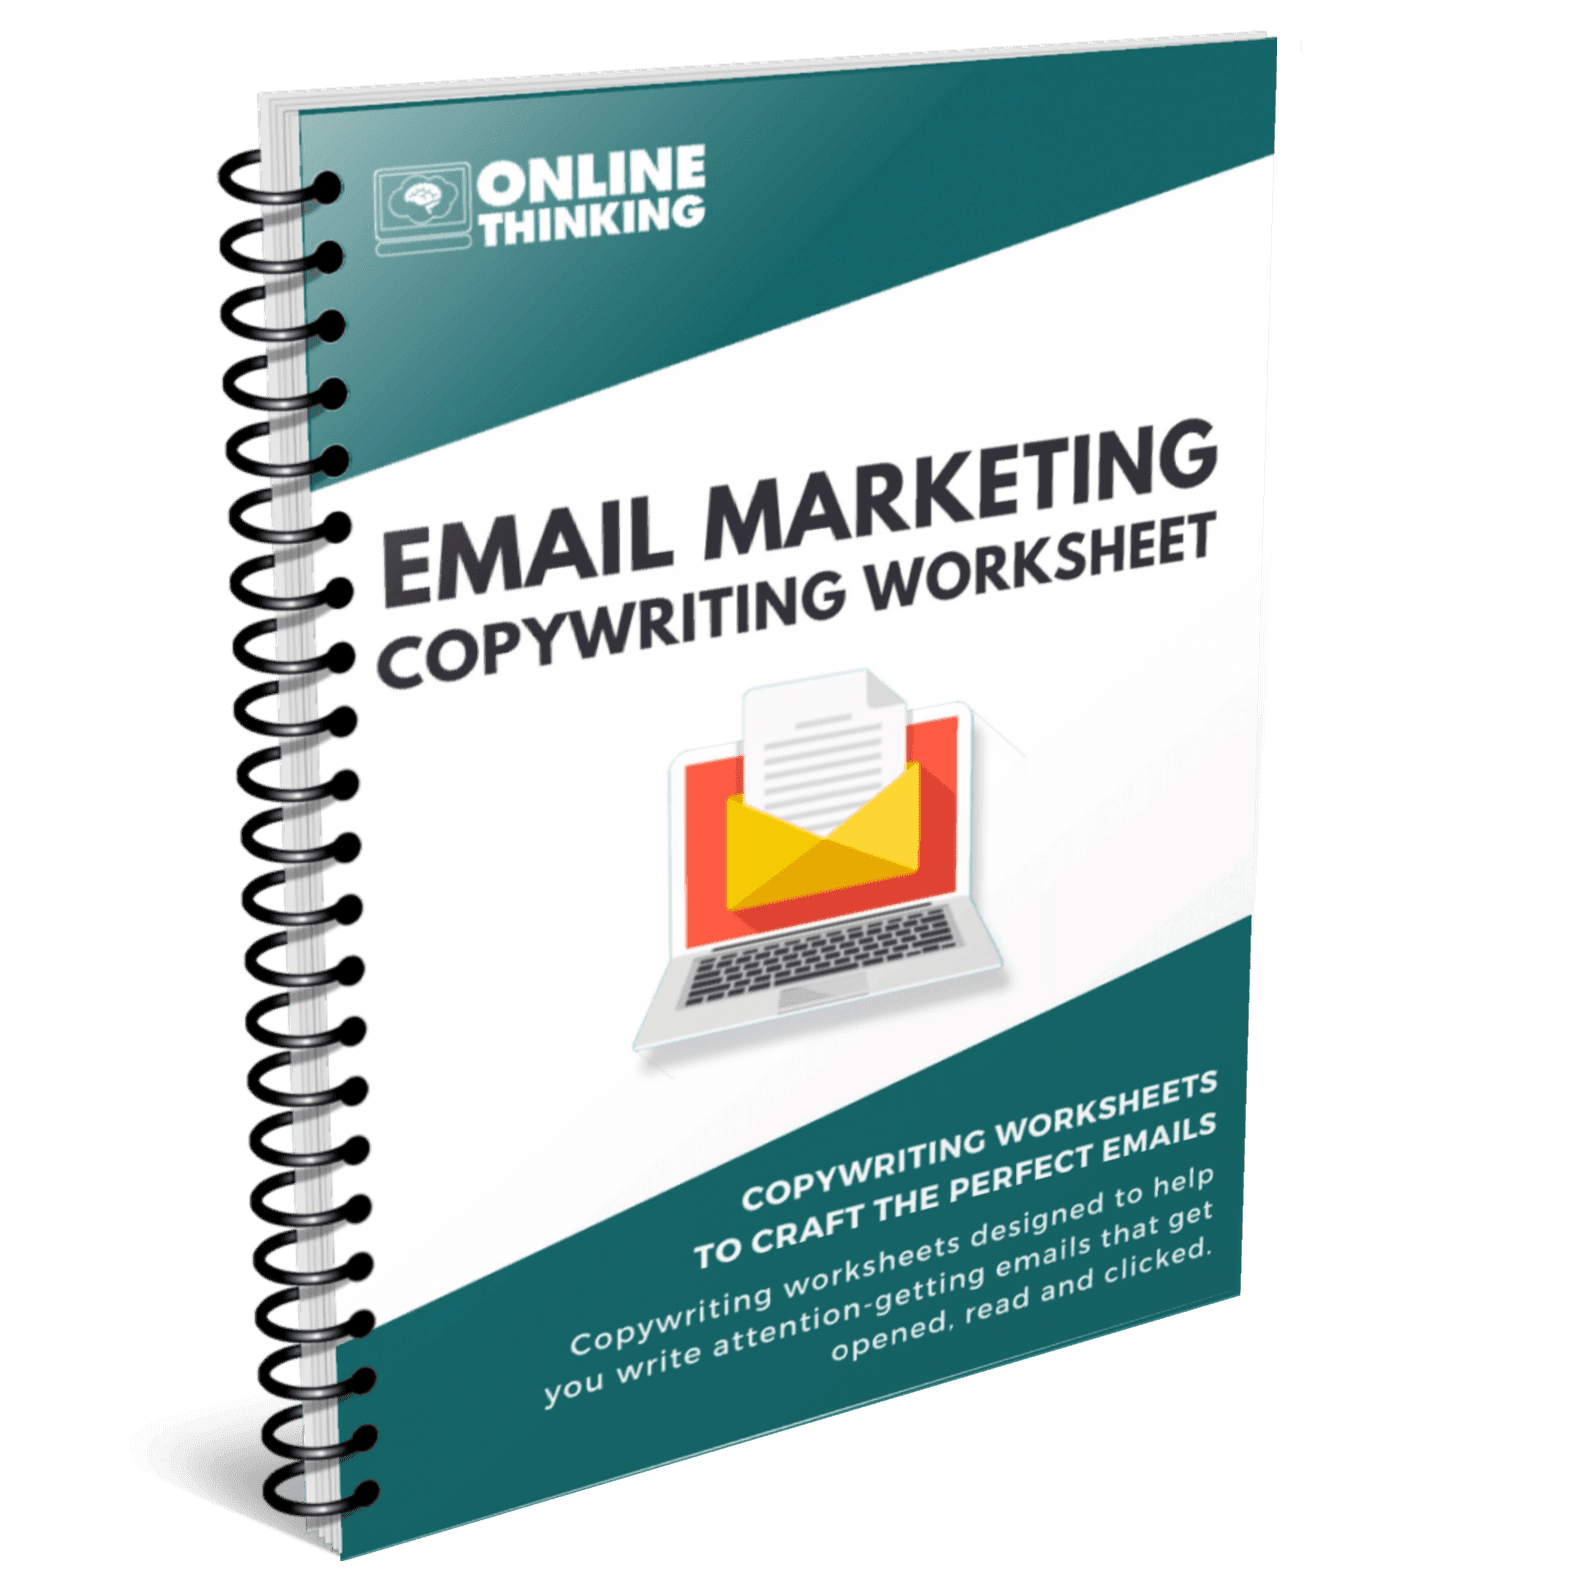 Email Marketing Copywriting Worksheet